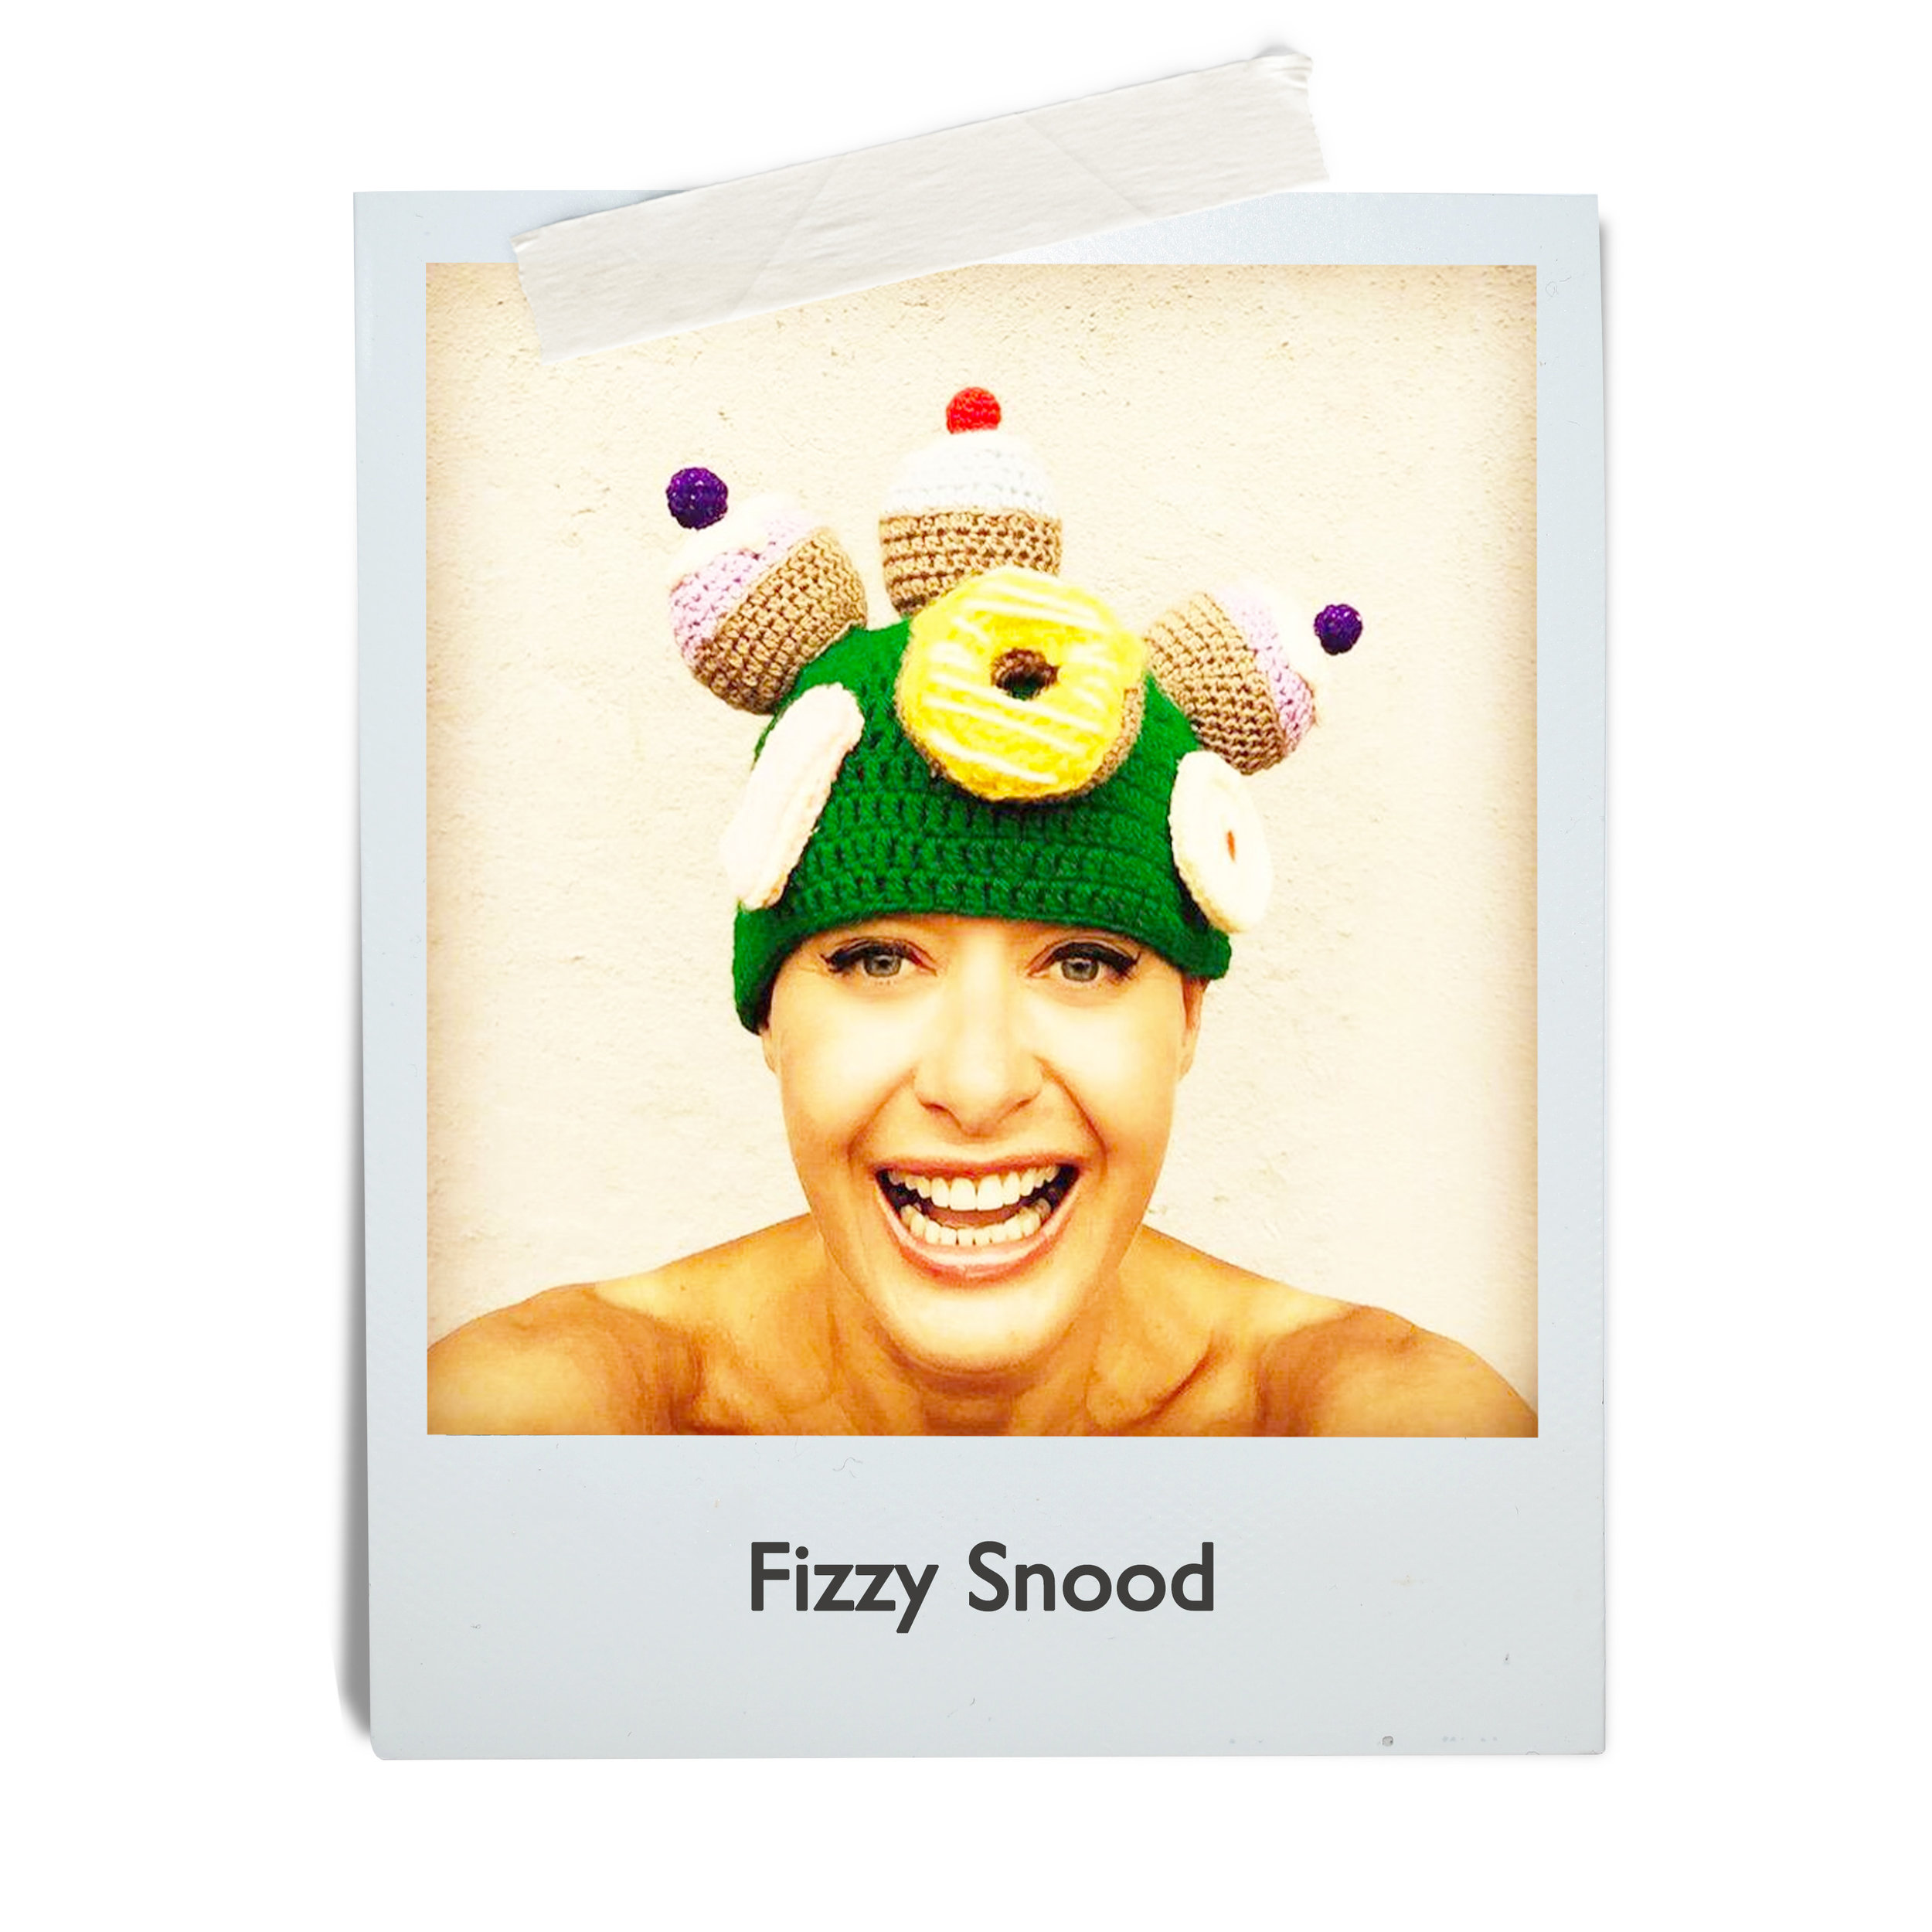 Fizzy Snood